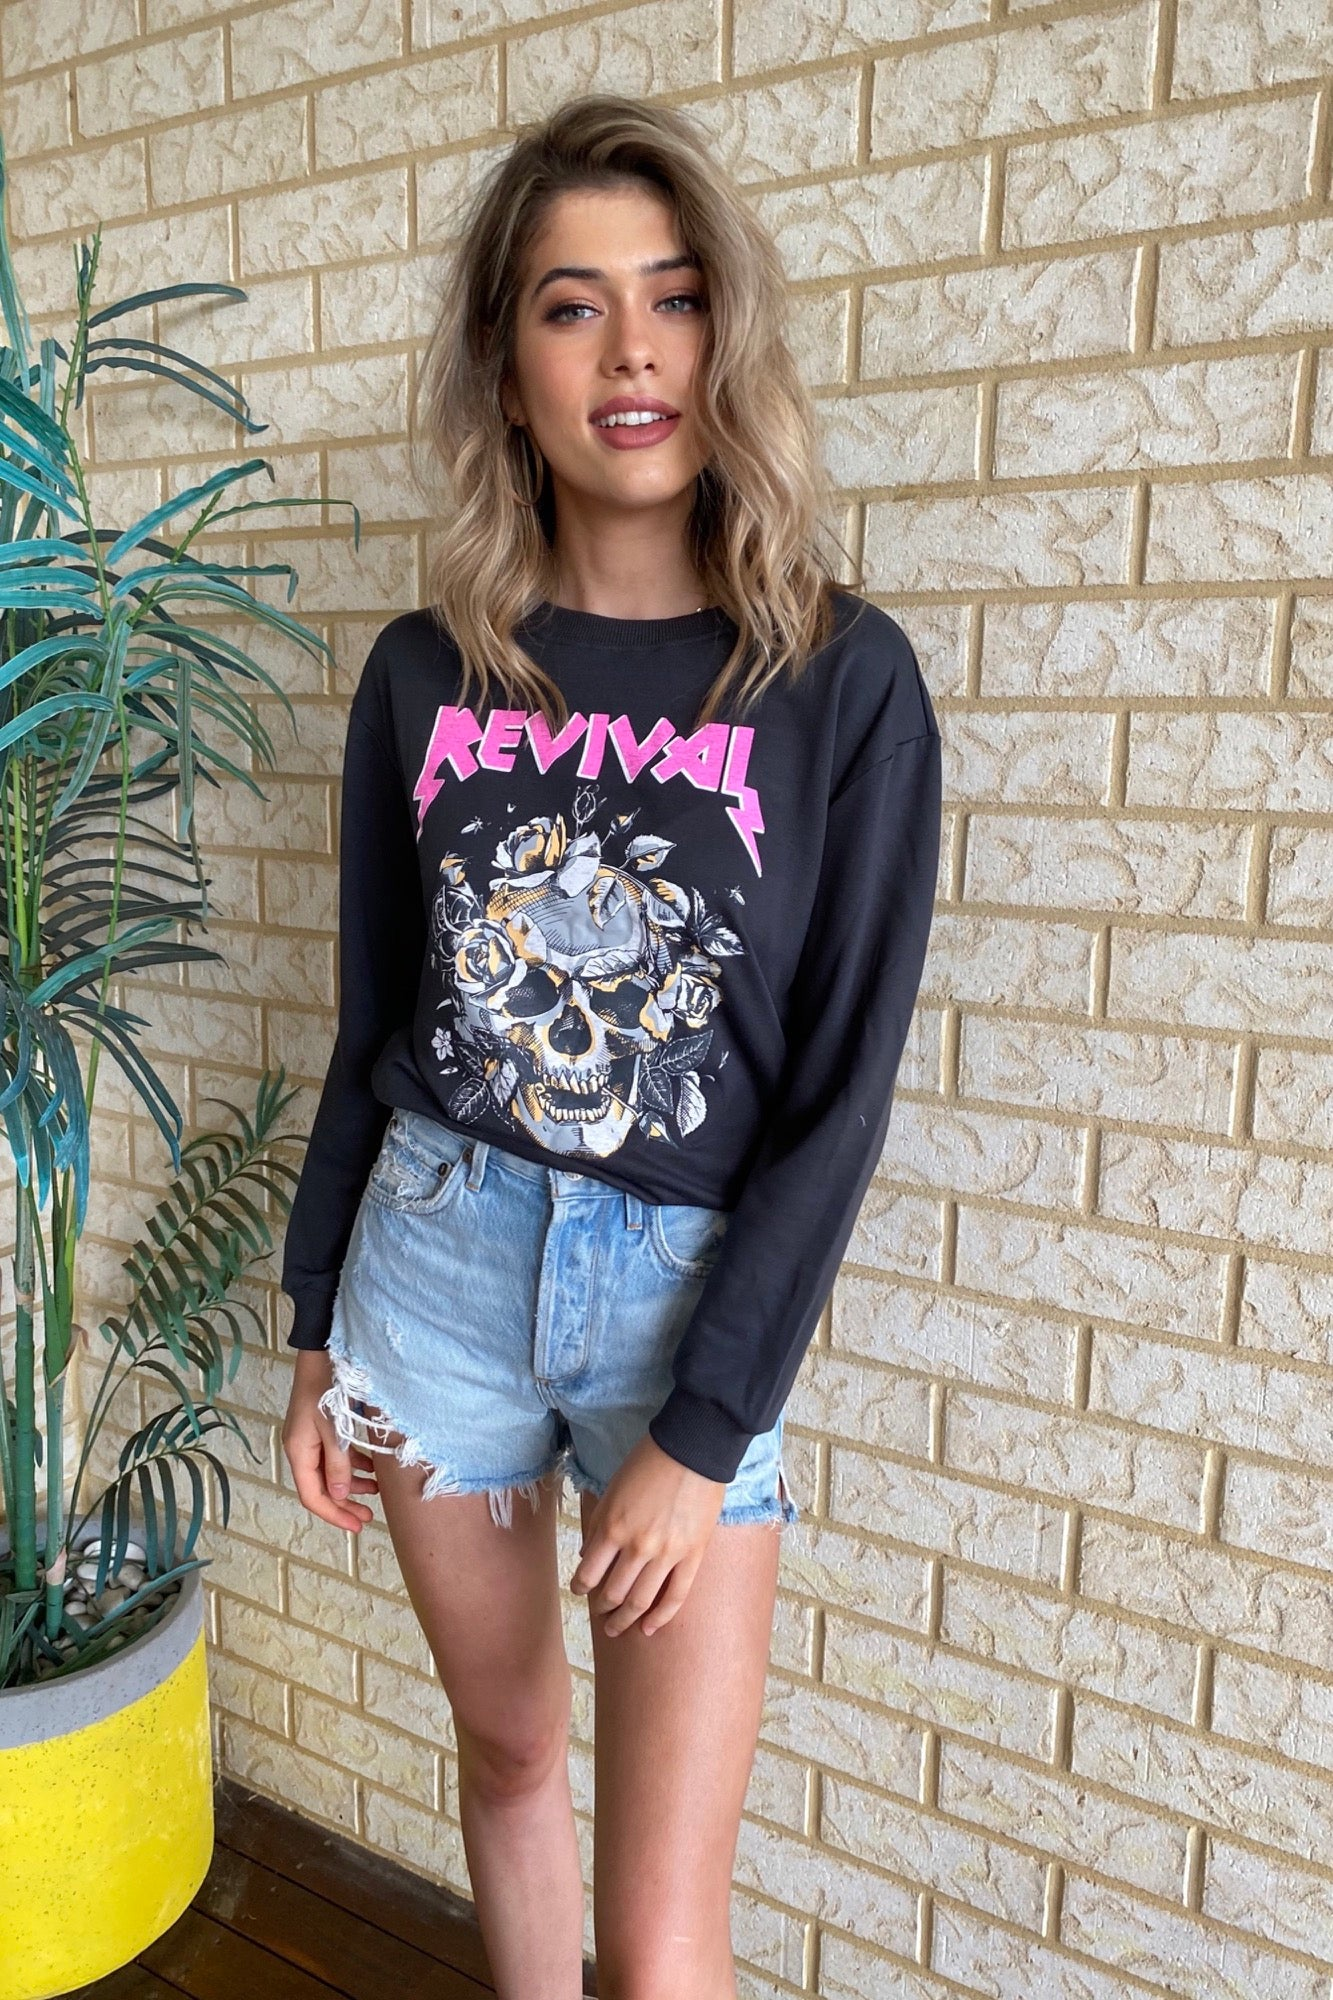 Revival Sweat - Vintage Black